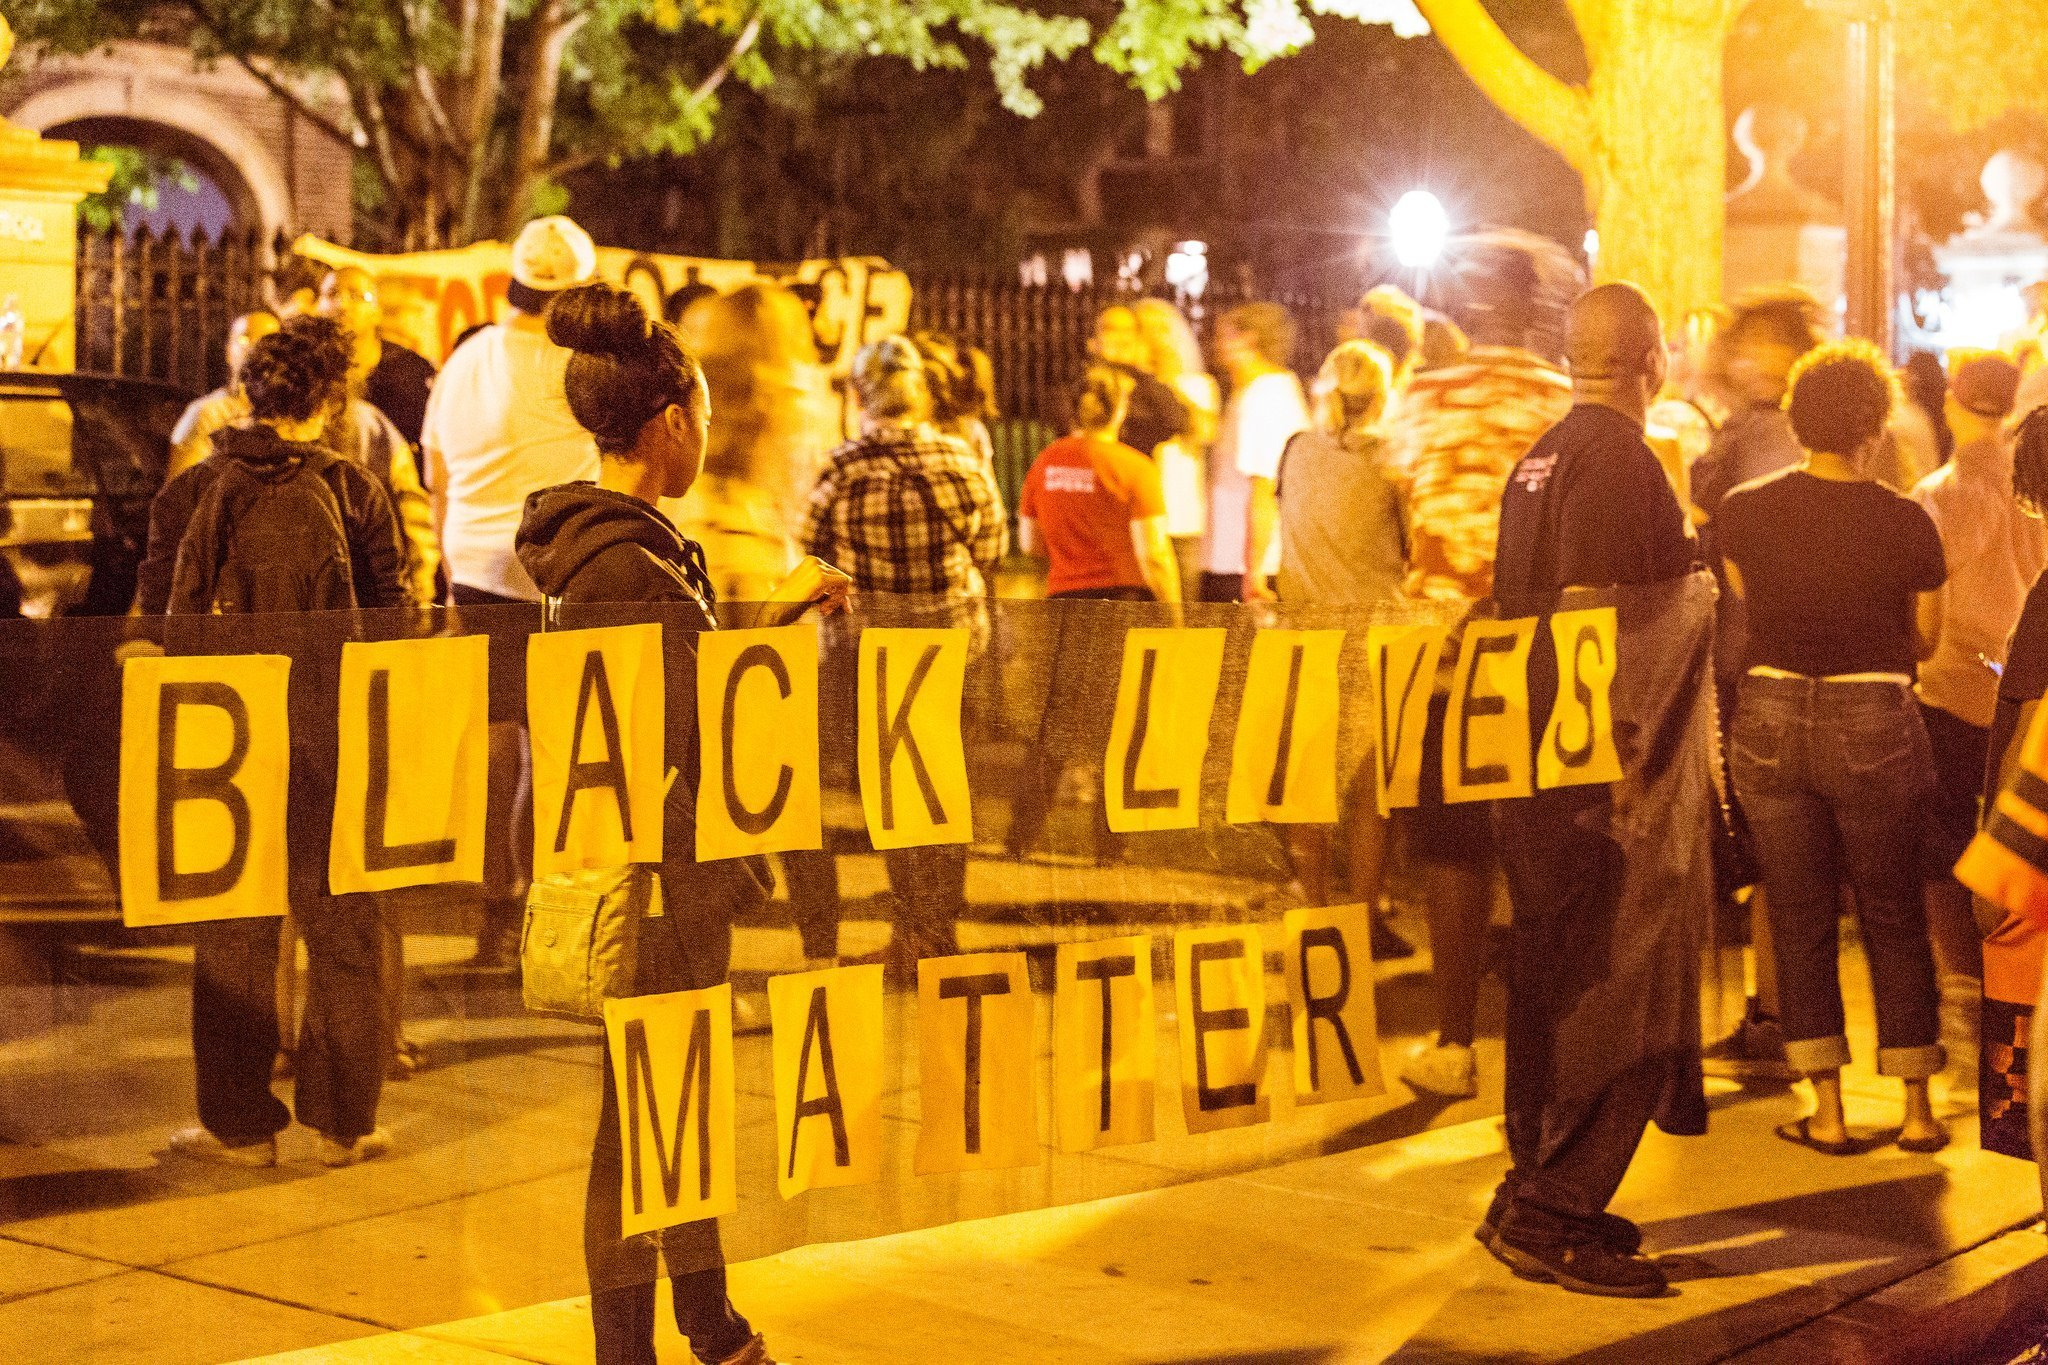 Black Lives Matter activists gathered at the governor's mansion in St. Paul after the traffic stop shooting of Philando Castile